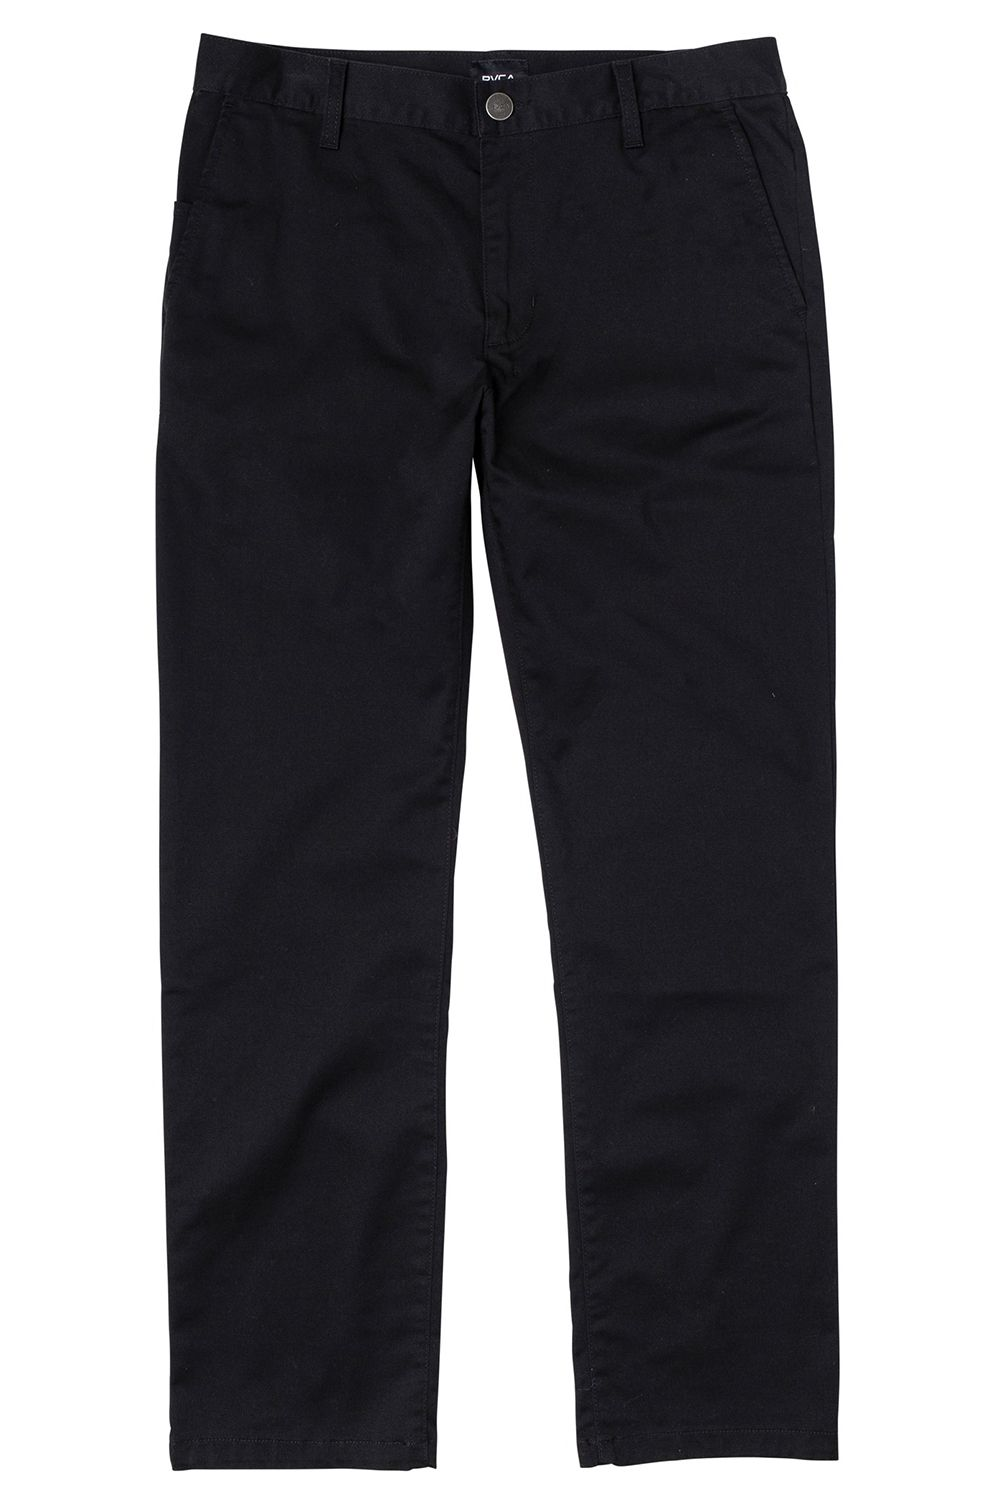 RVCA Pants THE WEEKEND STRETCH Black